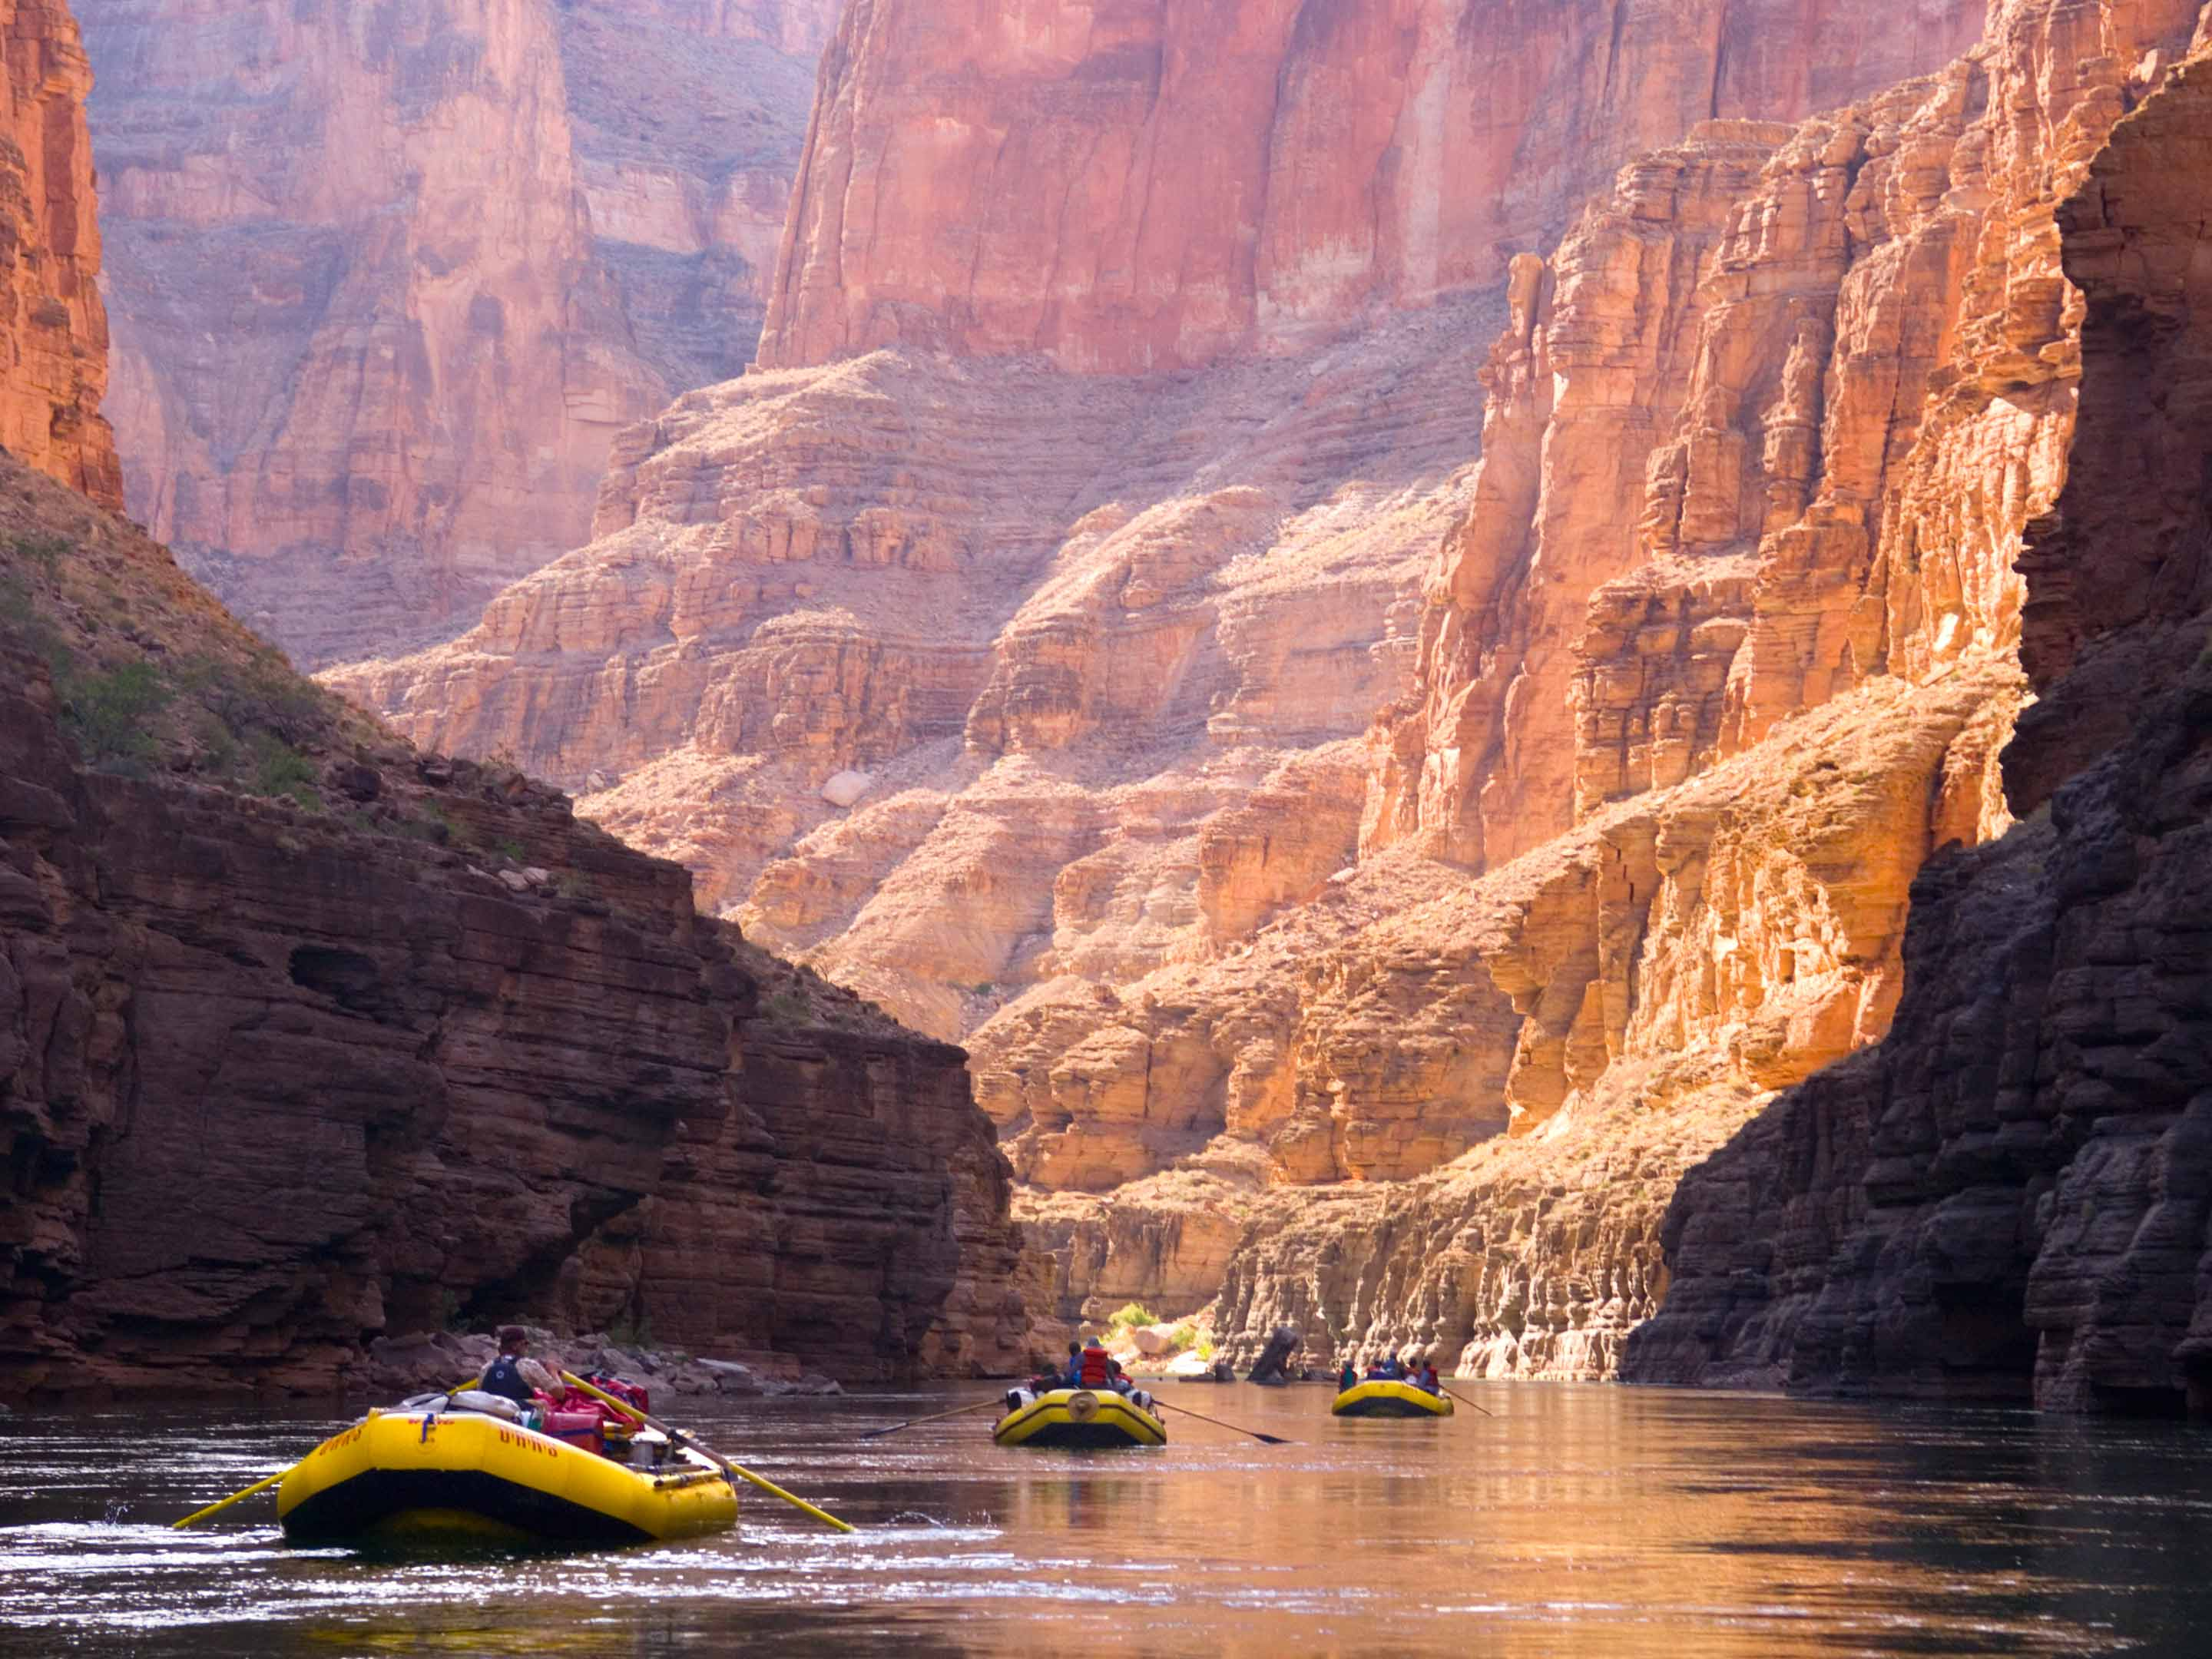 Rafting through the Grand Canyon with OARS